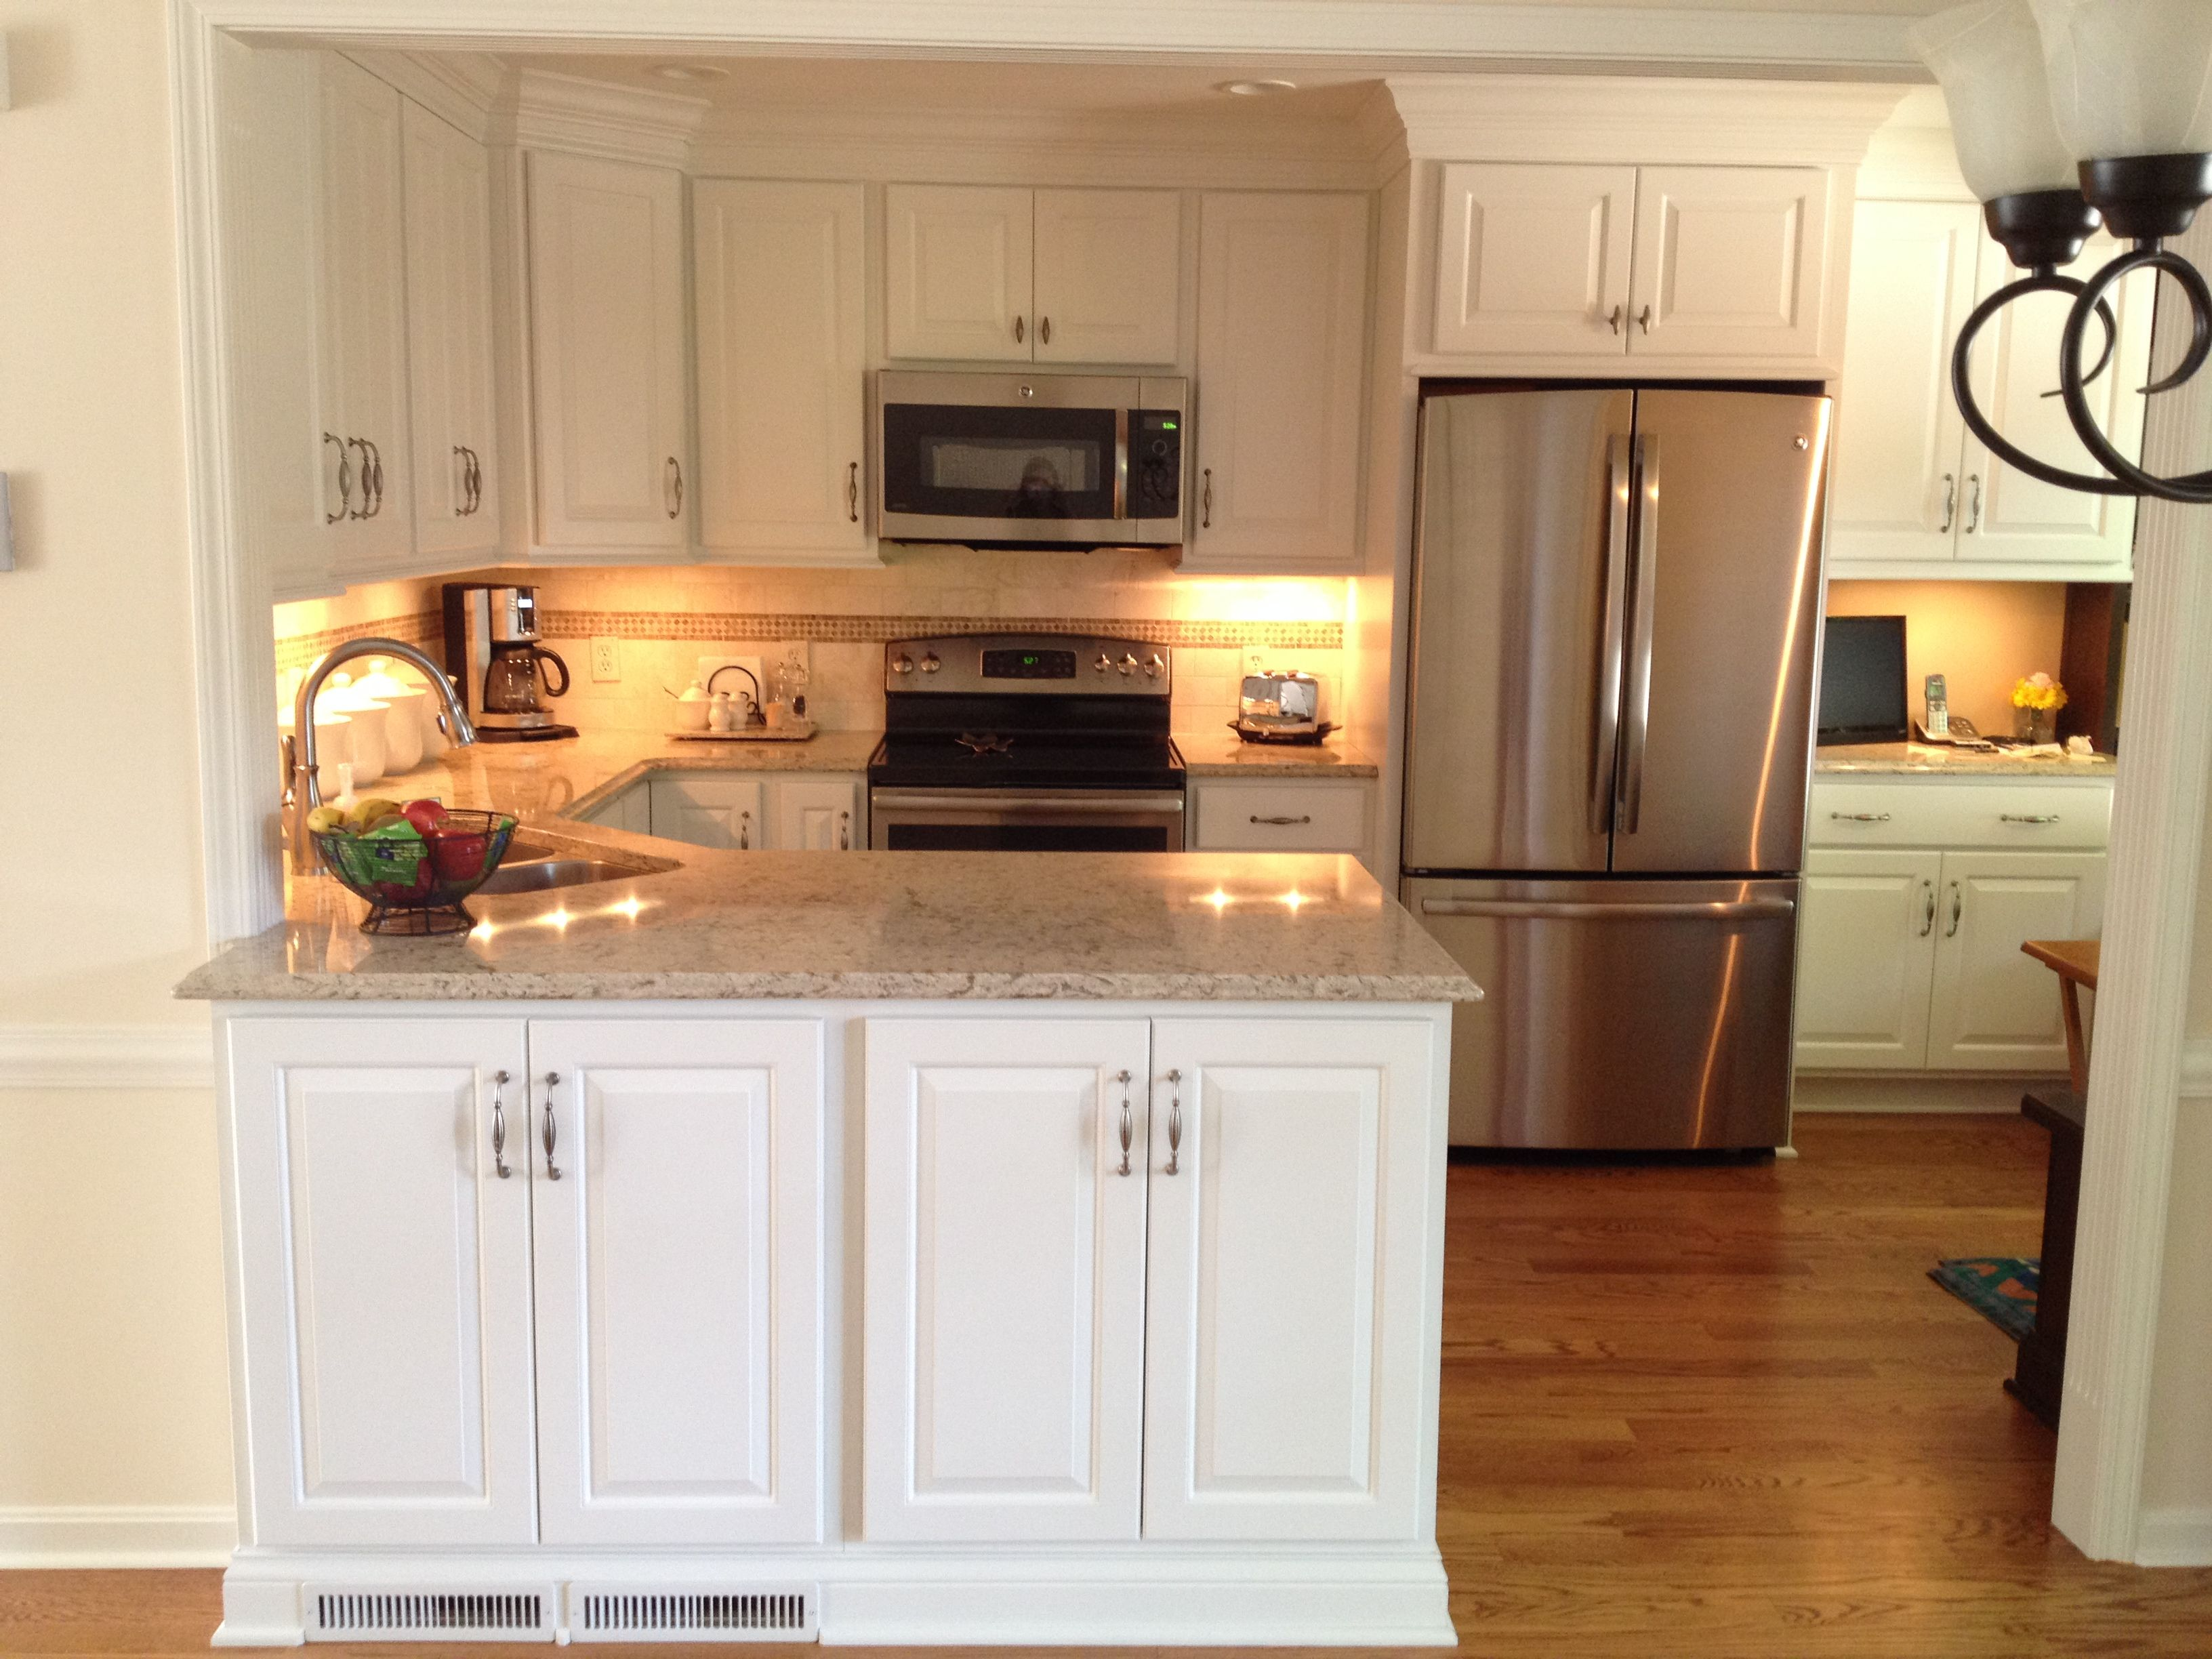 Aspect cabinetry white thermafoil raised panel doors and for Kitchen cabinets vs drawers